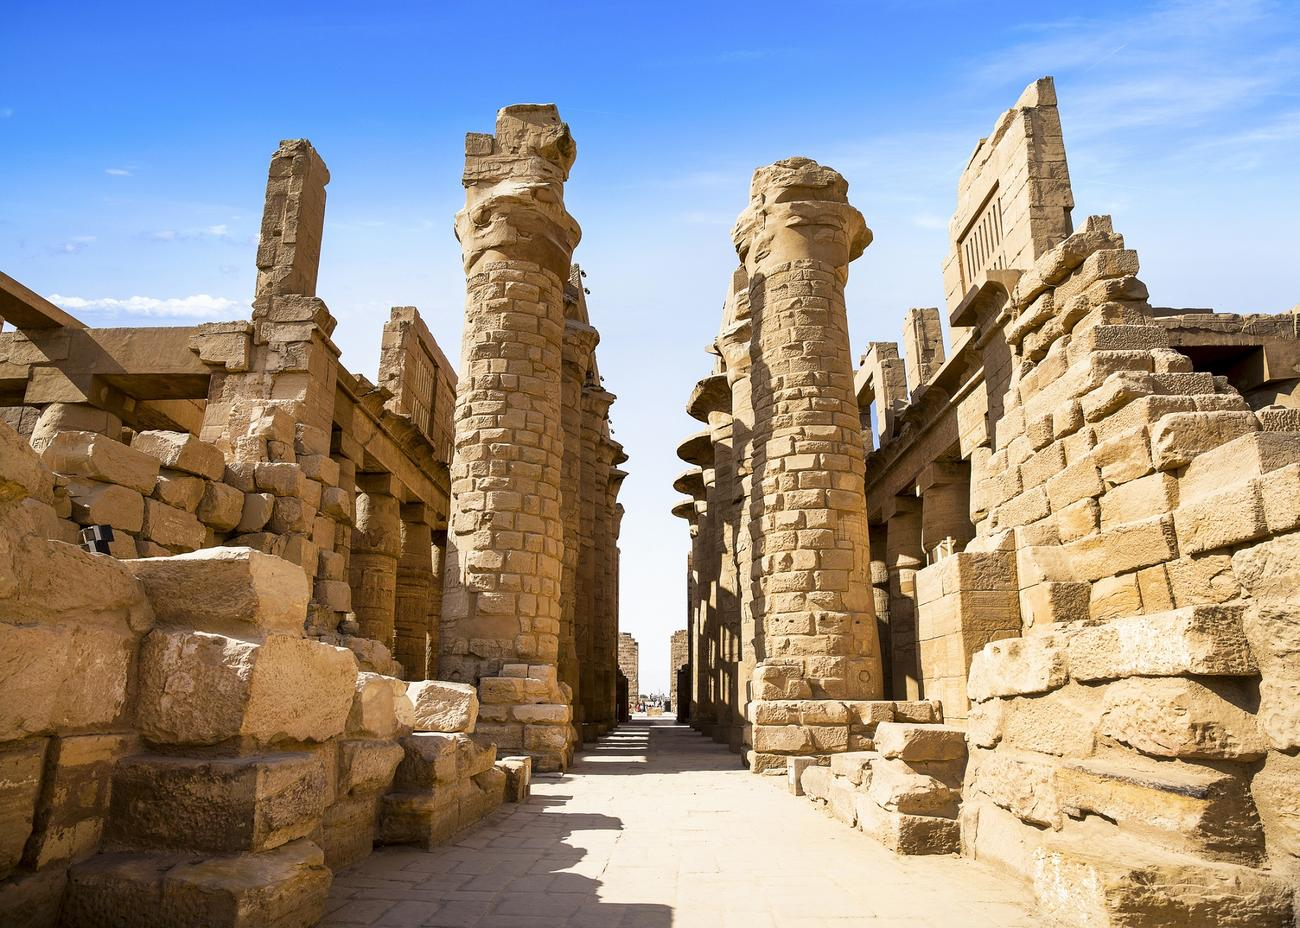 Walking through the Karnak temple when visiting Luxor in Egypt